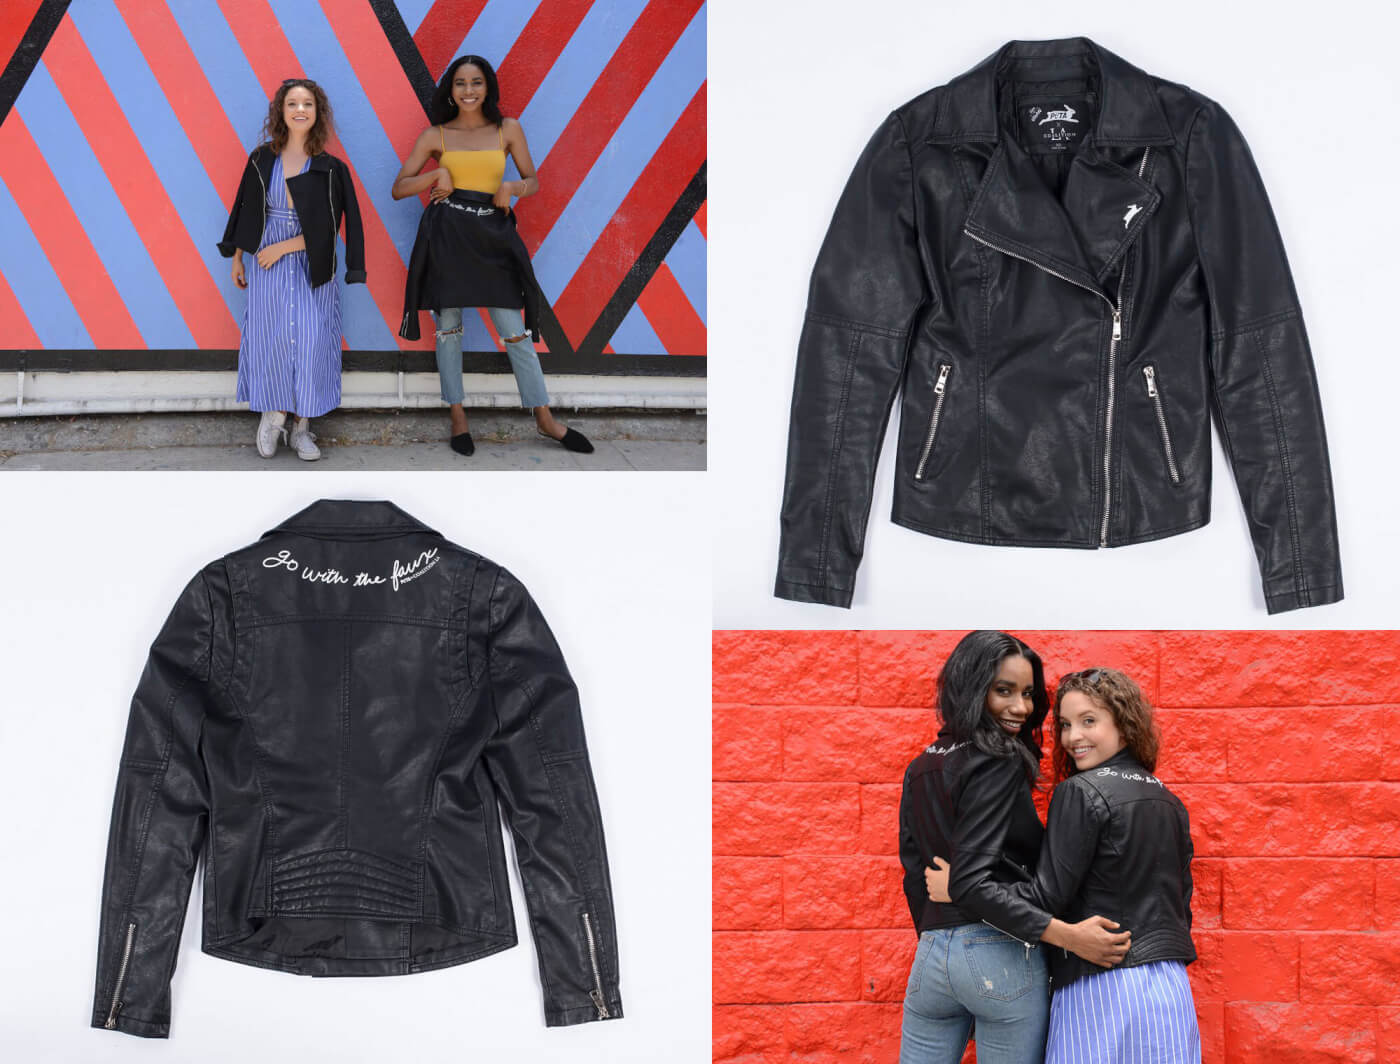 802b8a8cdbf Ride Into the Sunset in These Vegan Leather Motorcycle Jackets